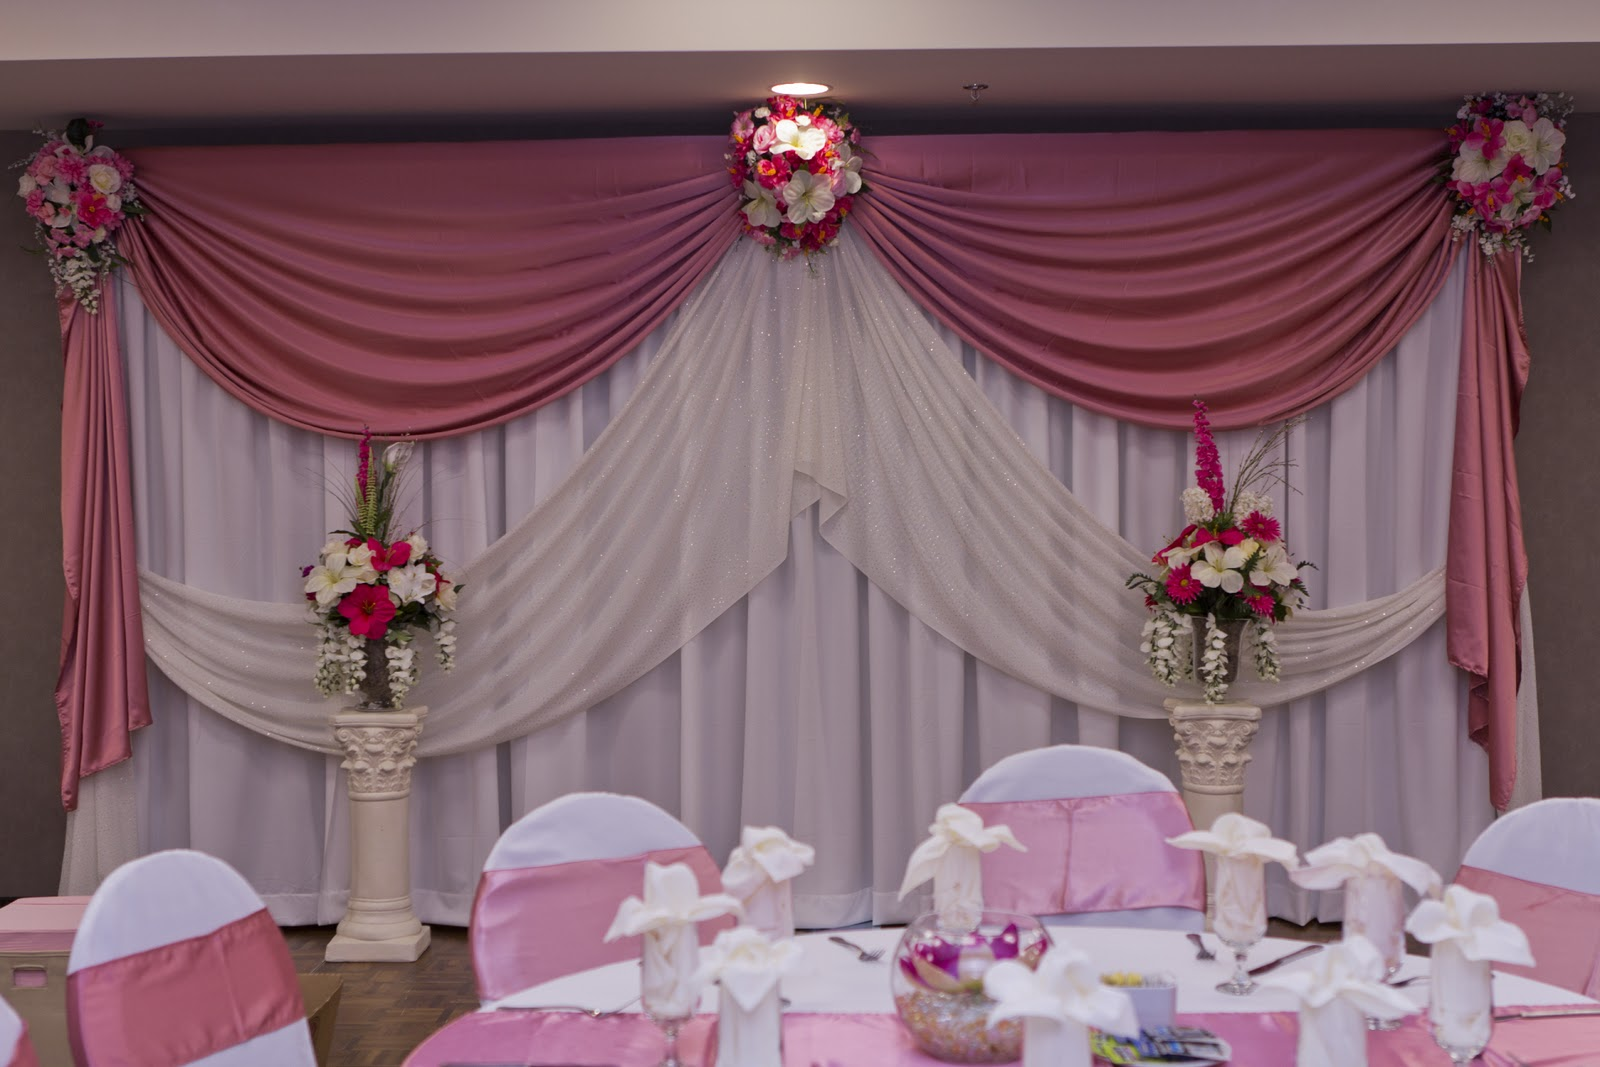 Wedding Decoration Decor Service And Rentals Backdrops Stage Venue